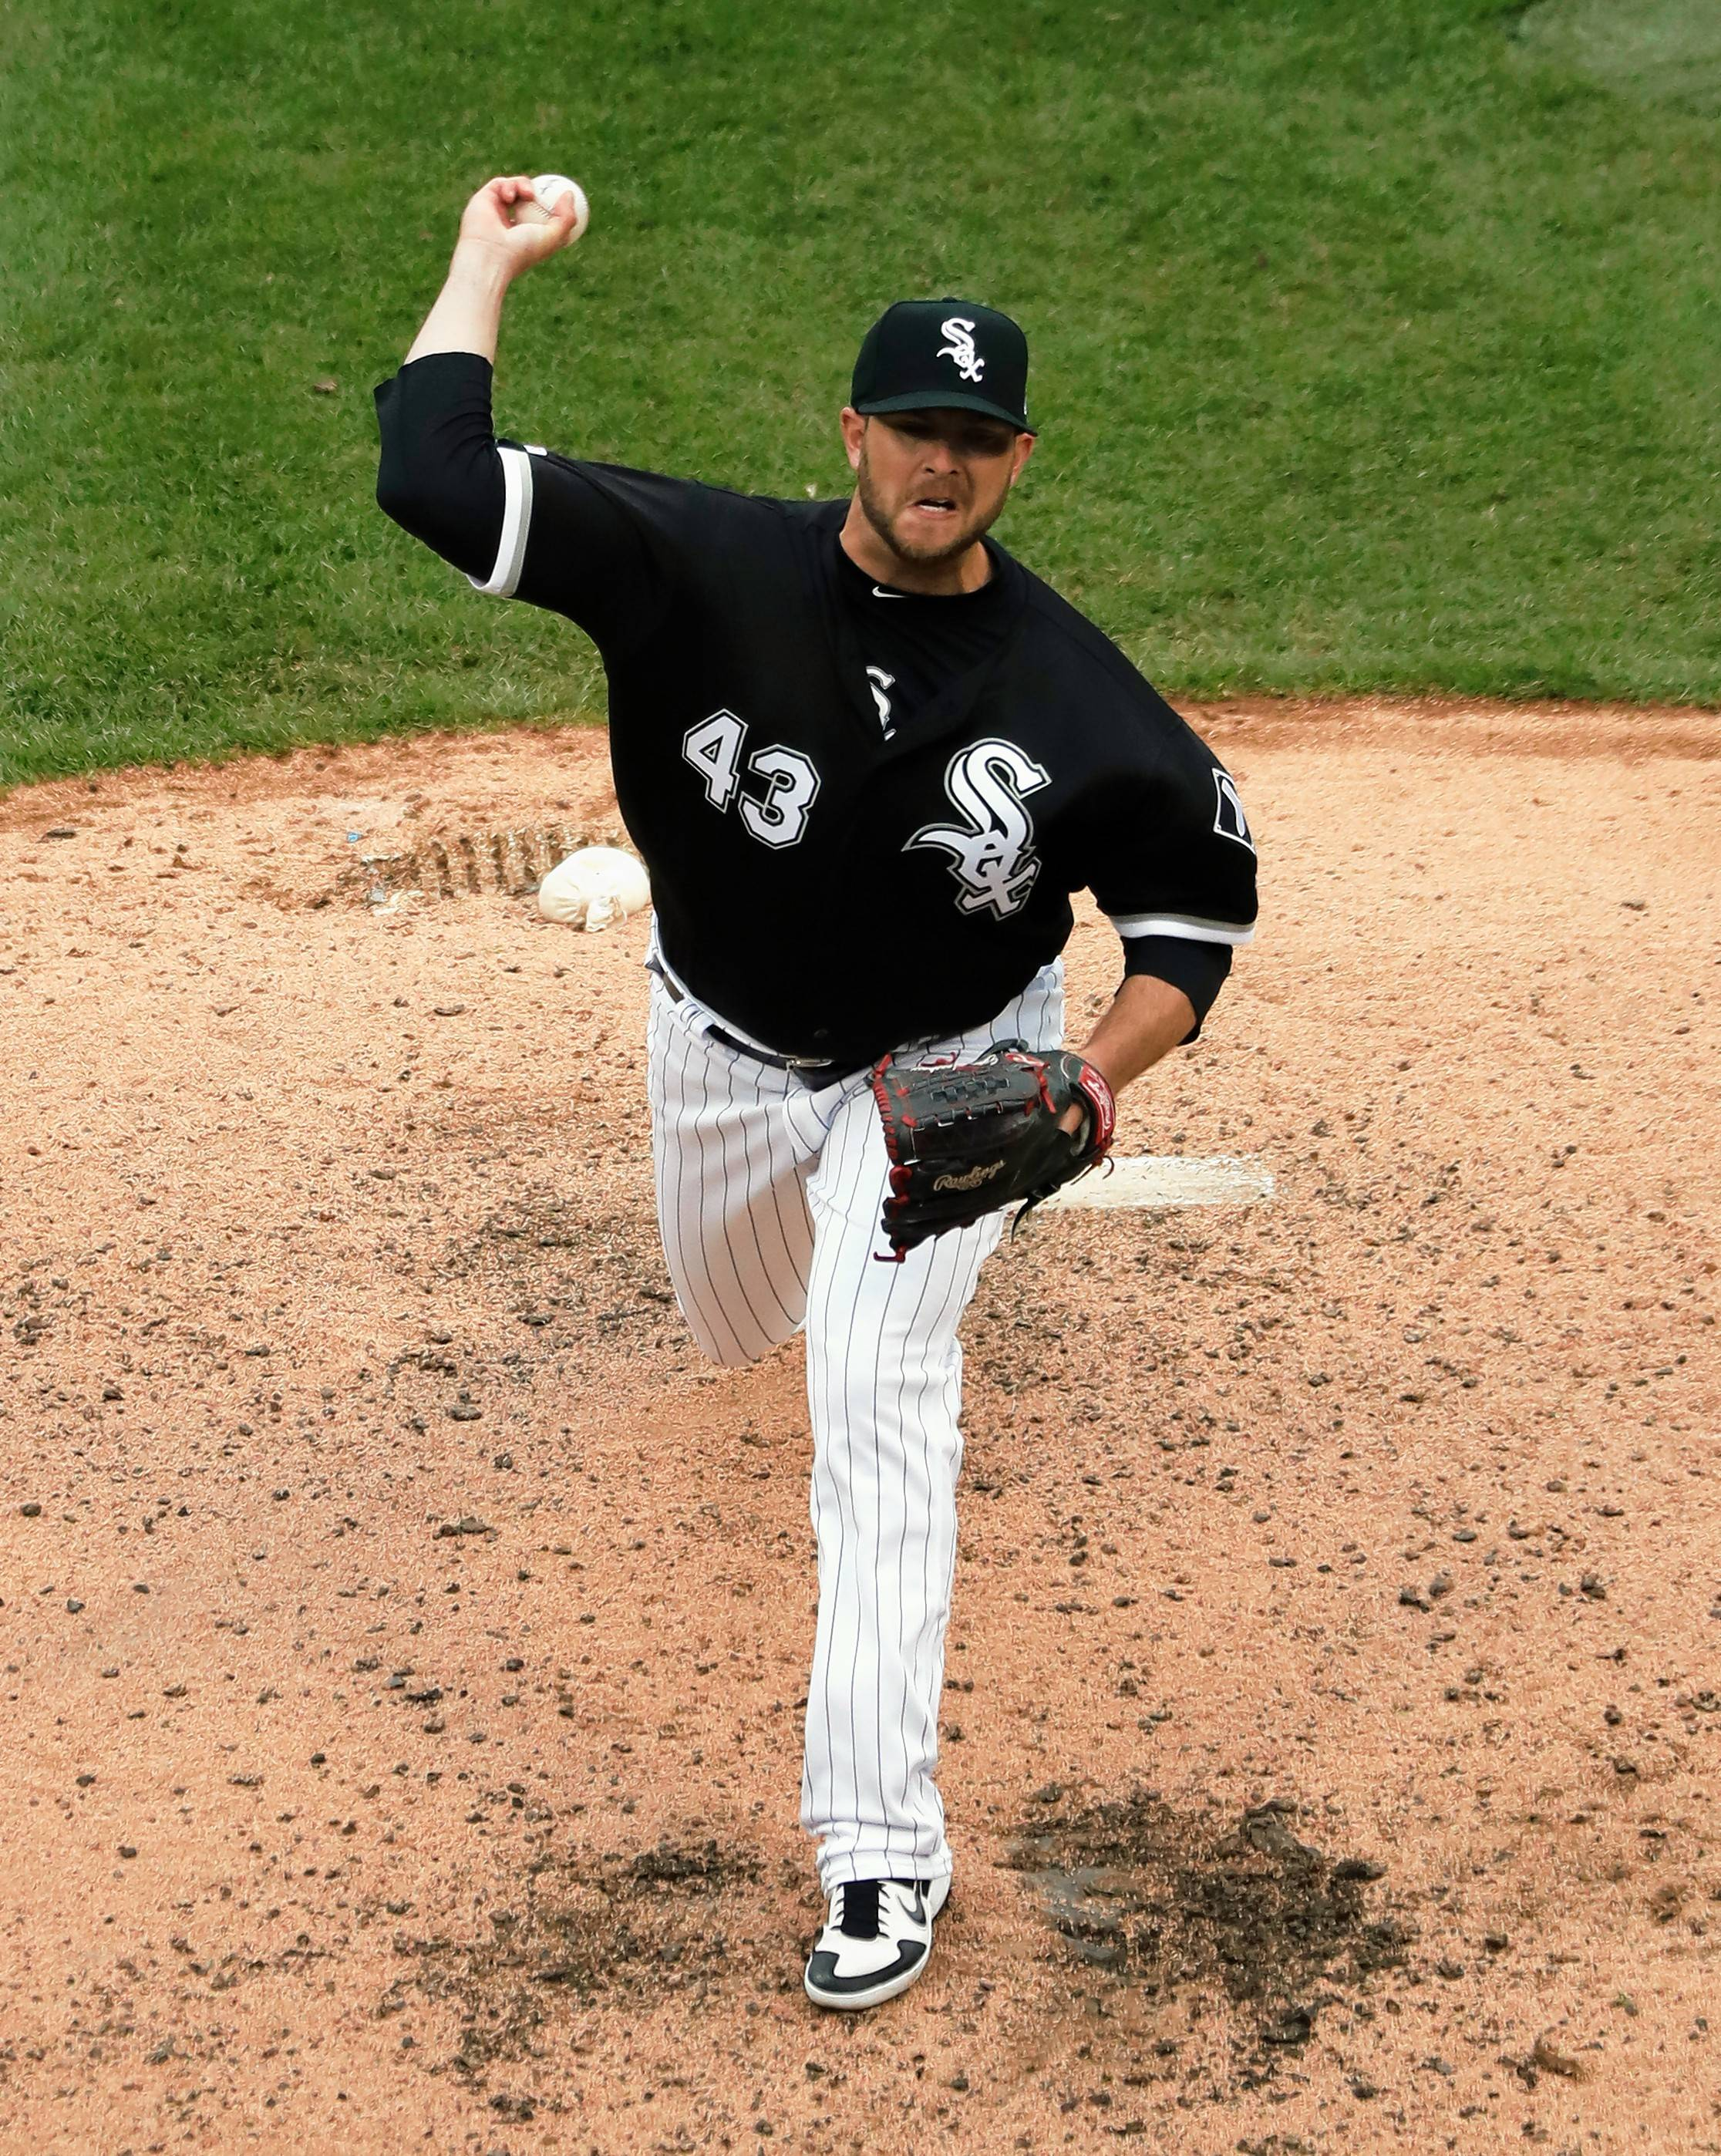 Chicago White Sox reliever Evan Marshall throws against the Baltimore Orioles during a May game. Four years after being struck in the head by a line drive, Marshall is playing with his fourth team in four years, but he knows he's lucky to be pitching at all — and lucky to be alive.